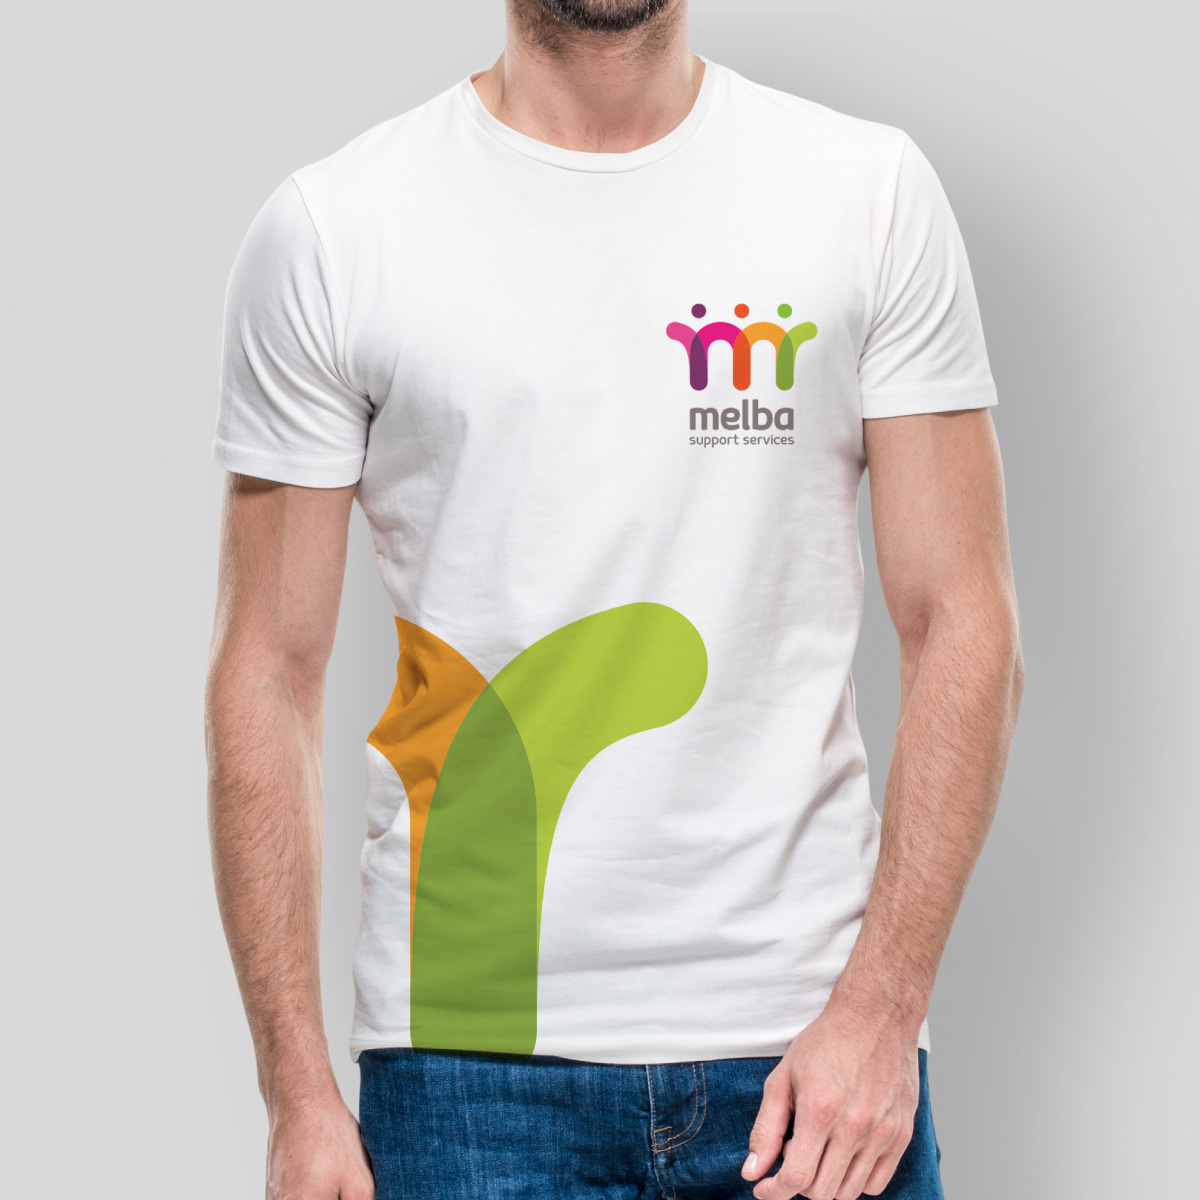 Melba Support Services T Shirt Design